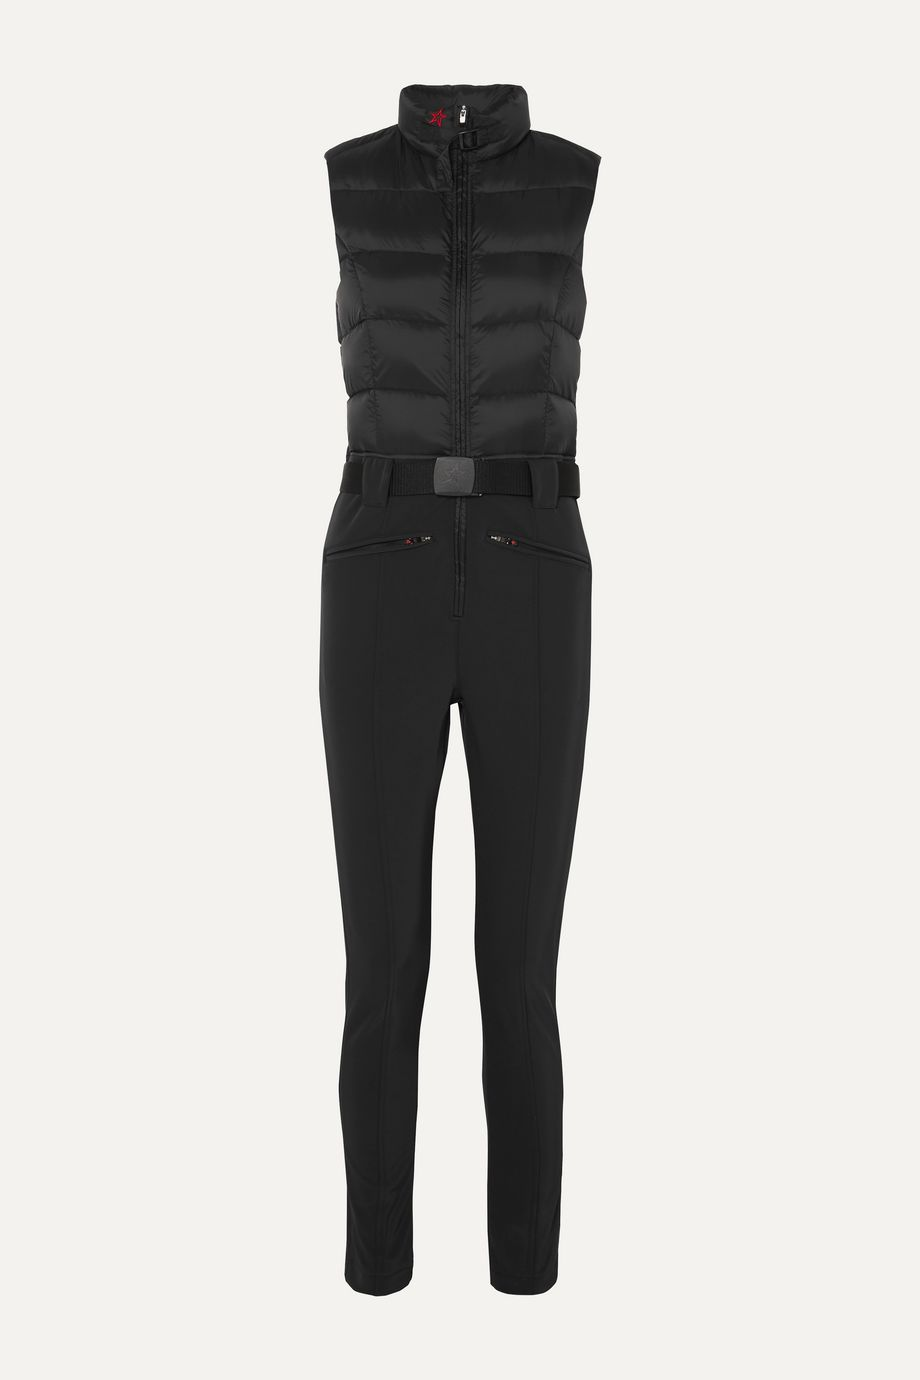 Perfect Moment Super Star belted quilted padded ski suit